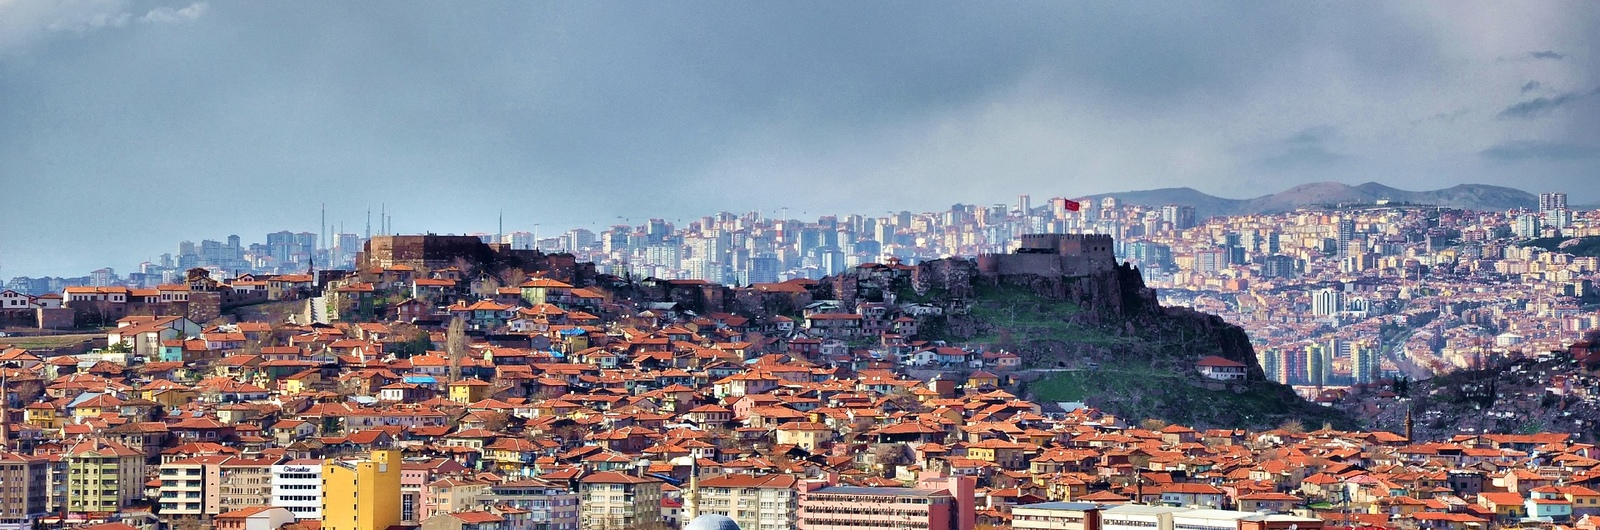 ankara city header